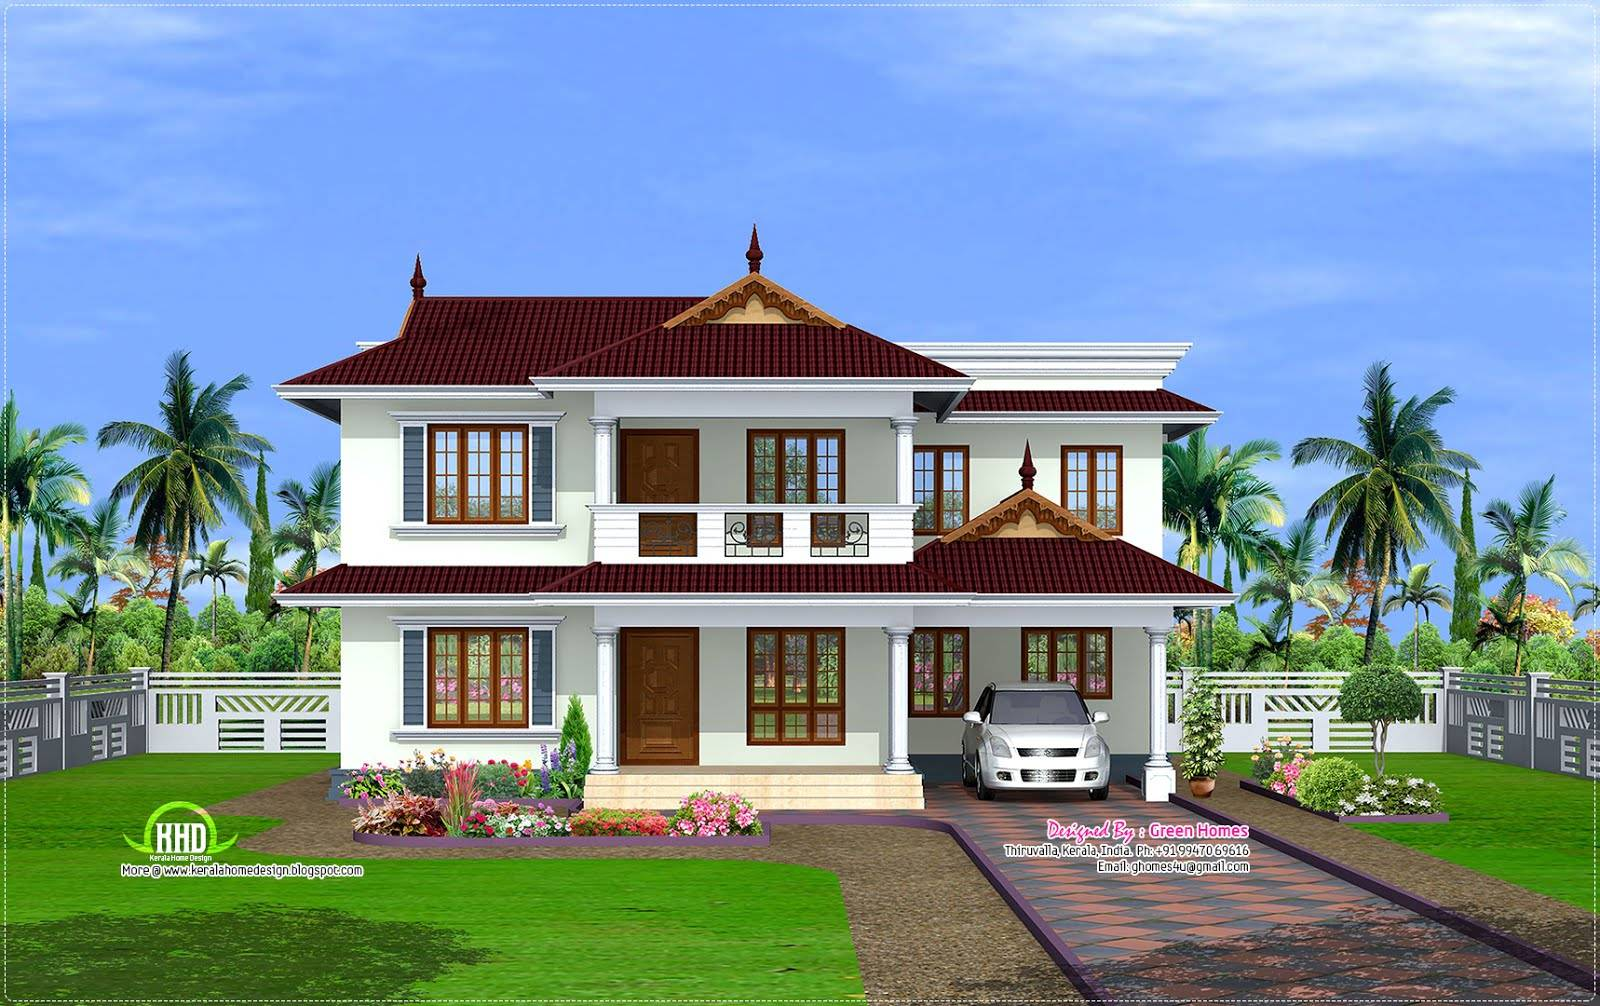 Highlands-pointe-taytay-victoria-house-model-perspective